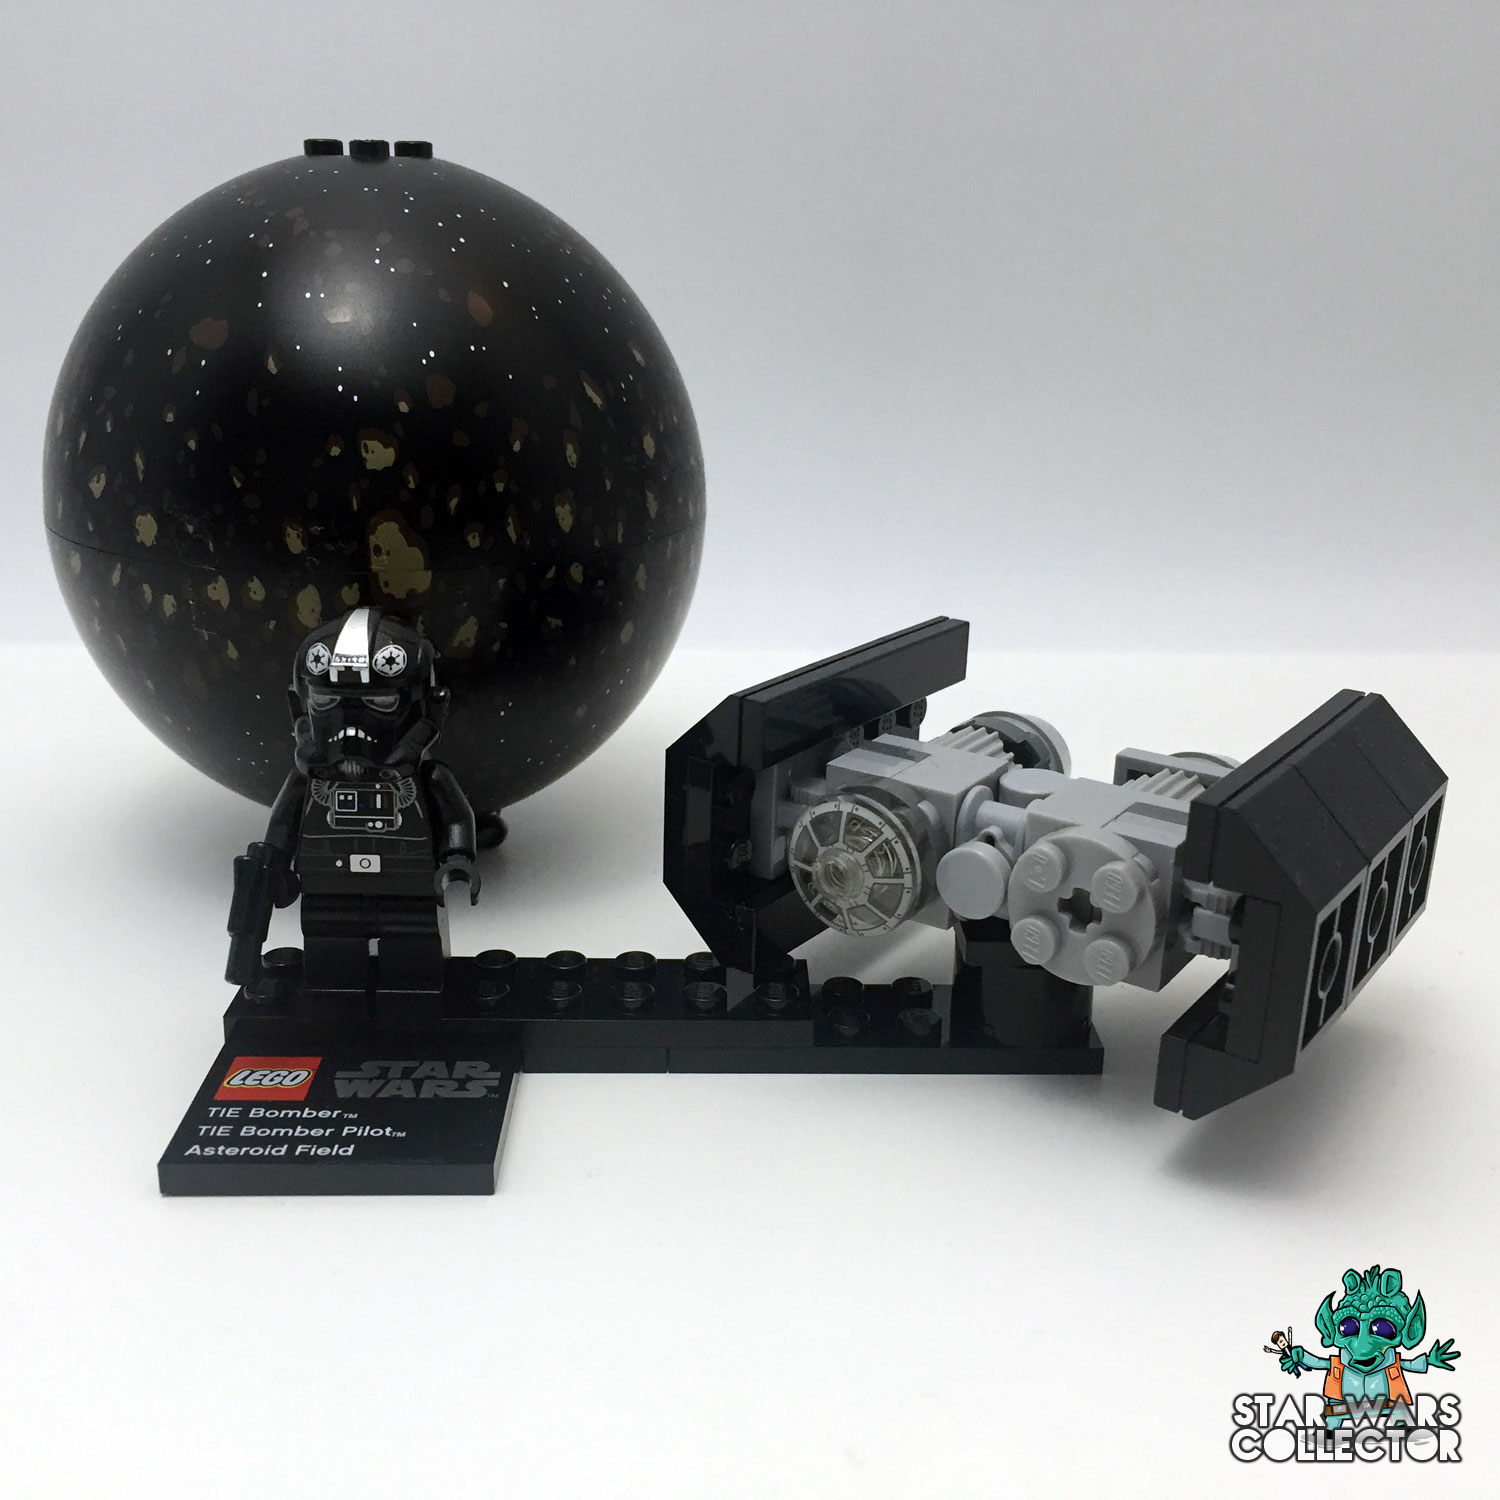 LEGO Star Wars 75008 TIE Bomber & Asteroid Field